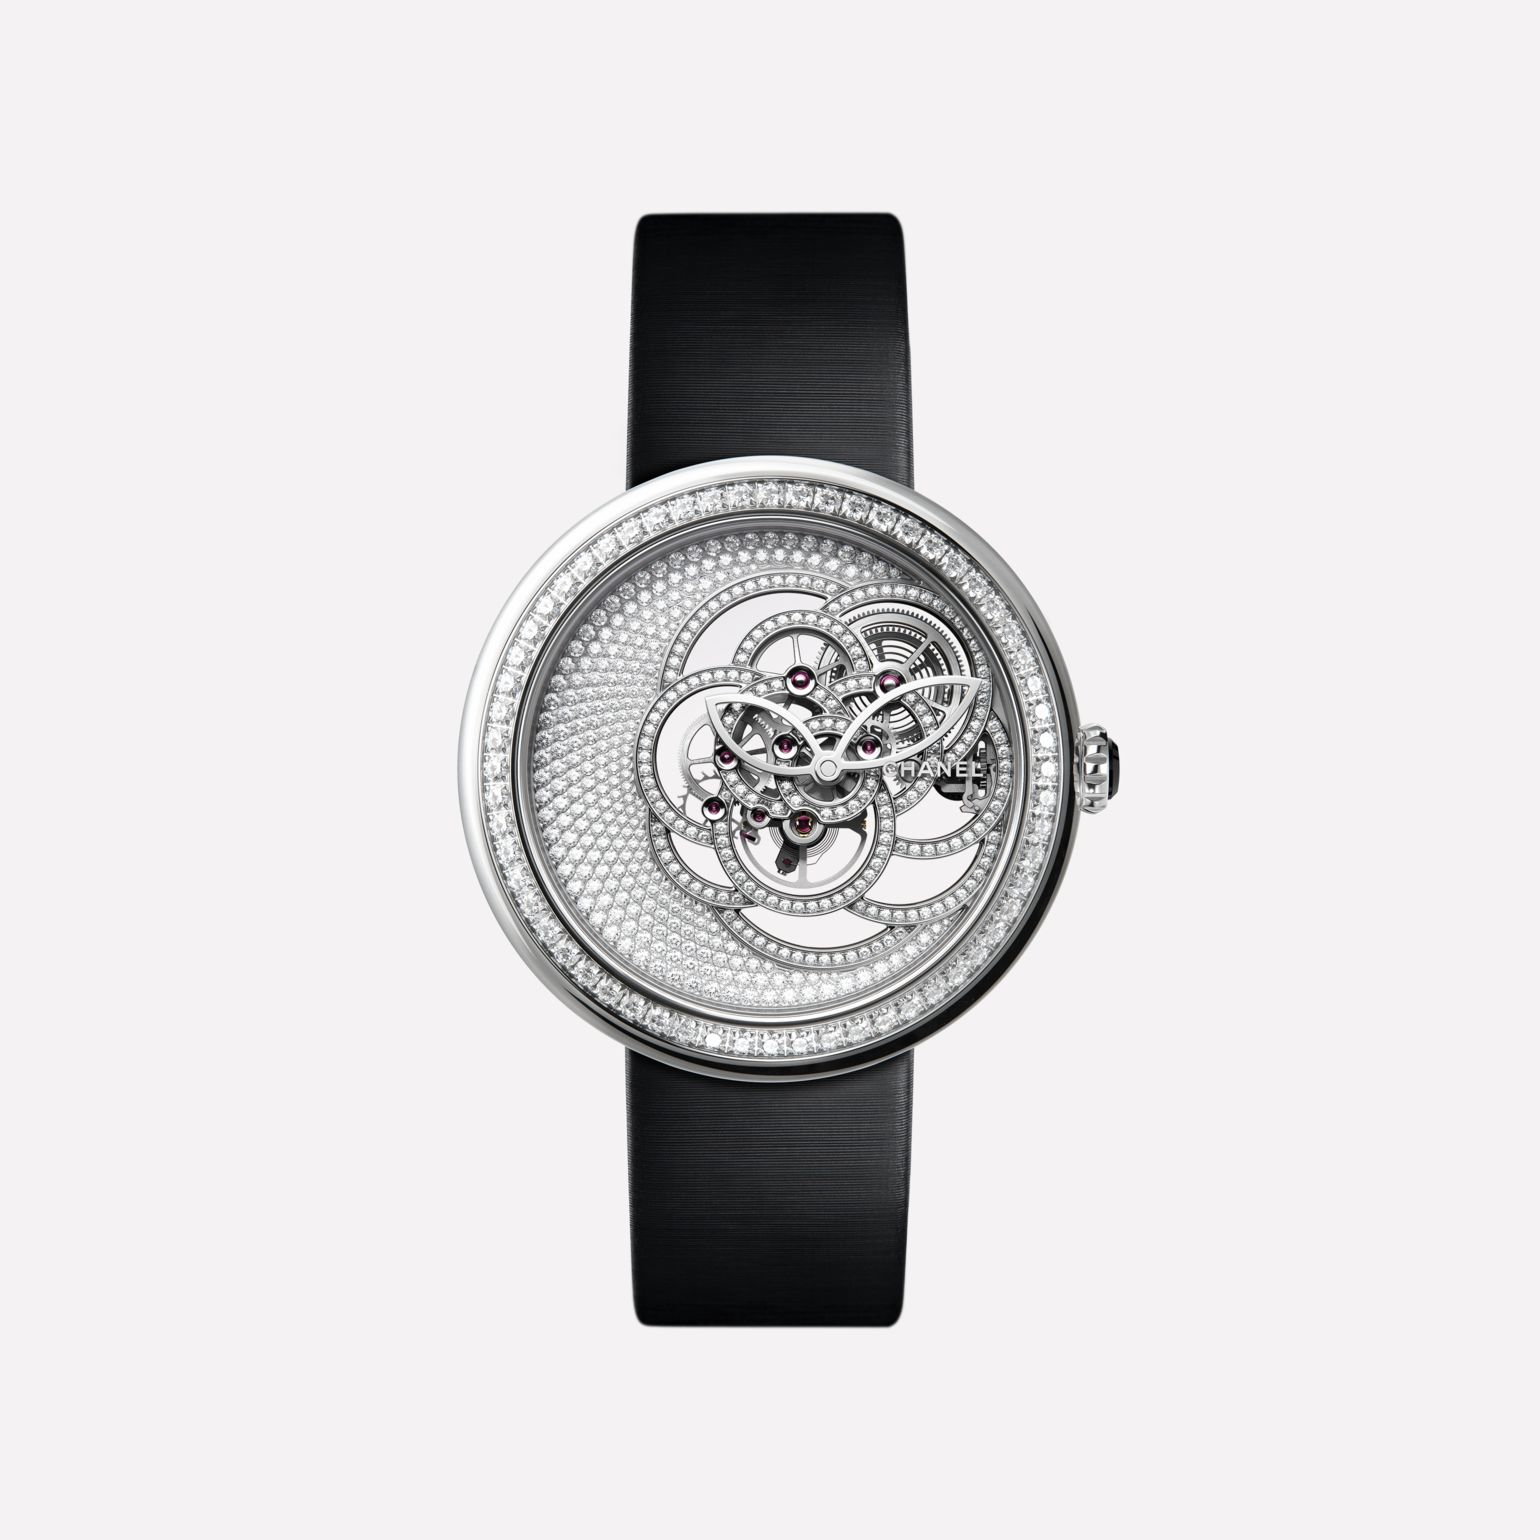 Mademoiselle Privé Camélia Skeleton Watch White gold case, dial and skeleton set with brilliant cut diamonds